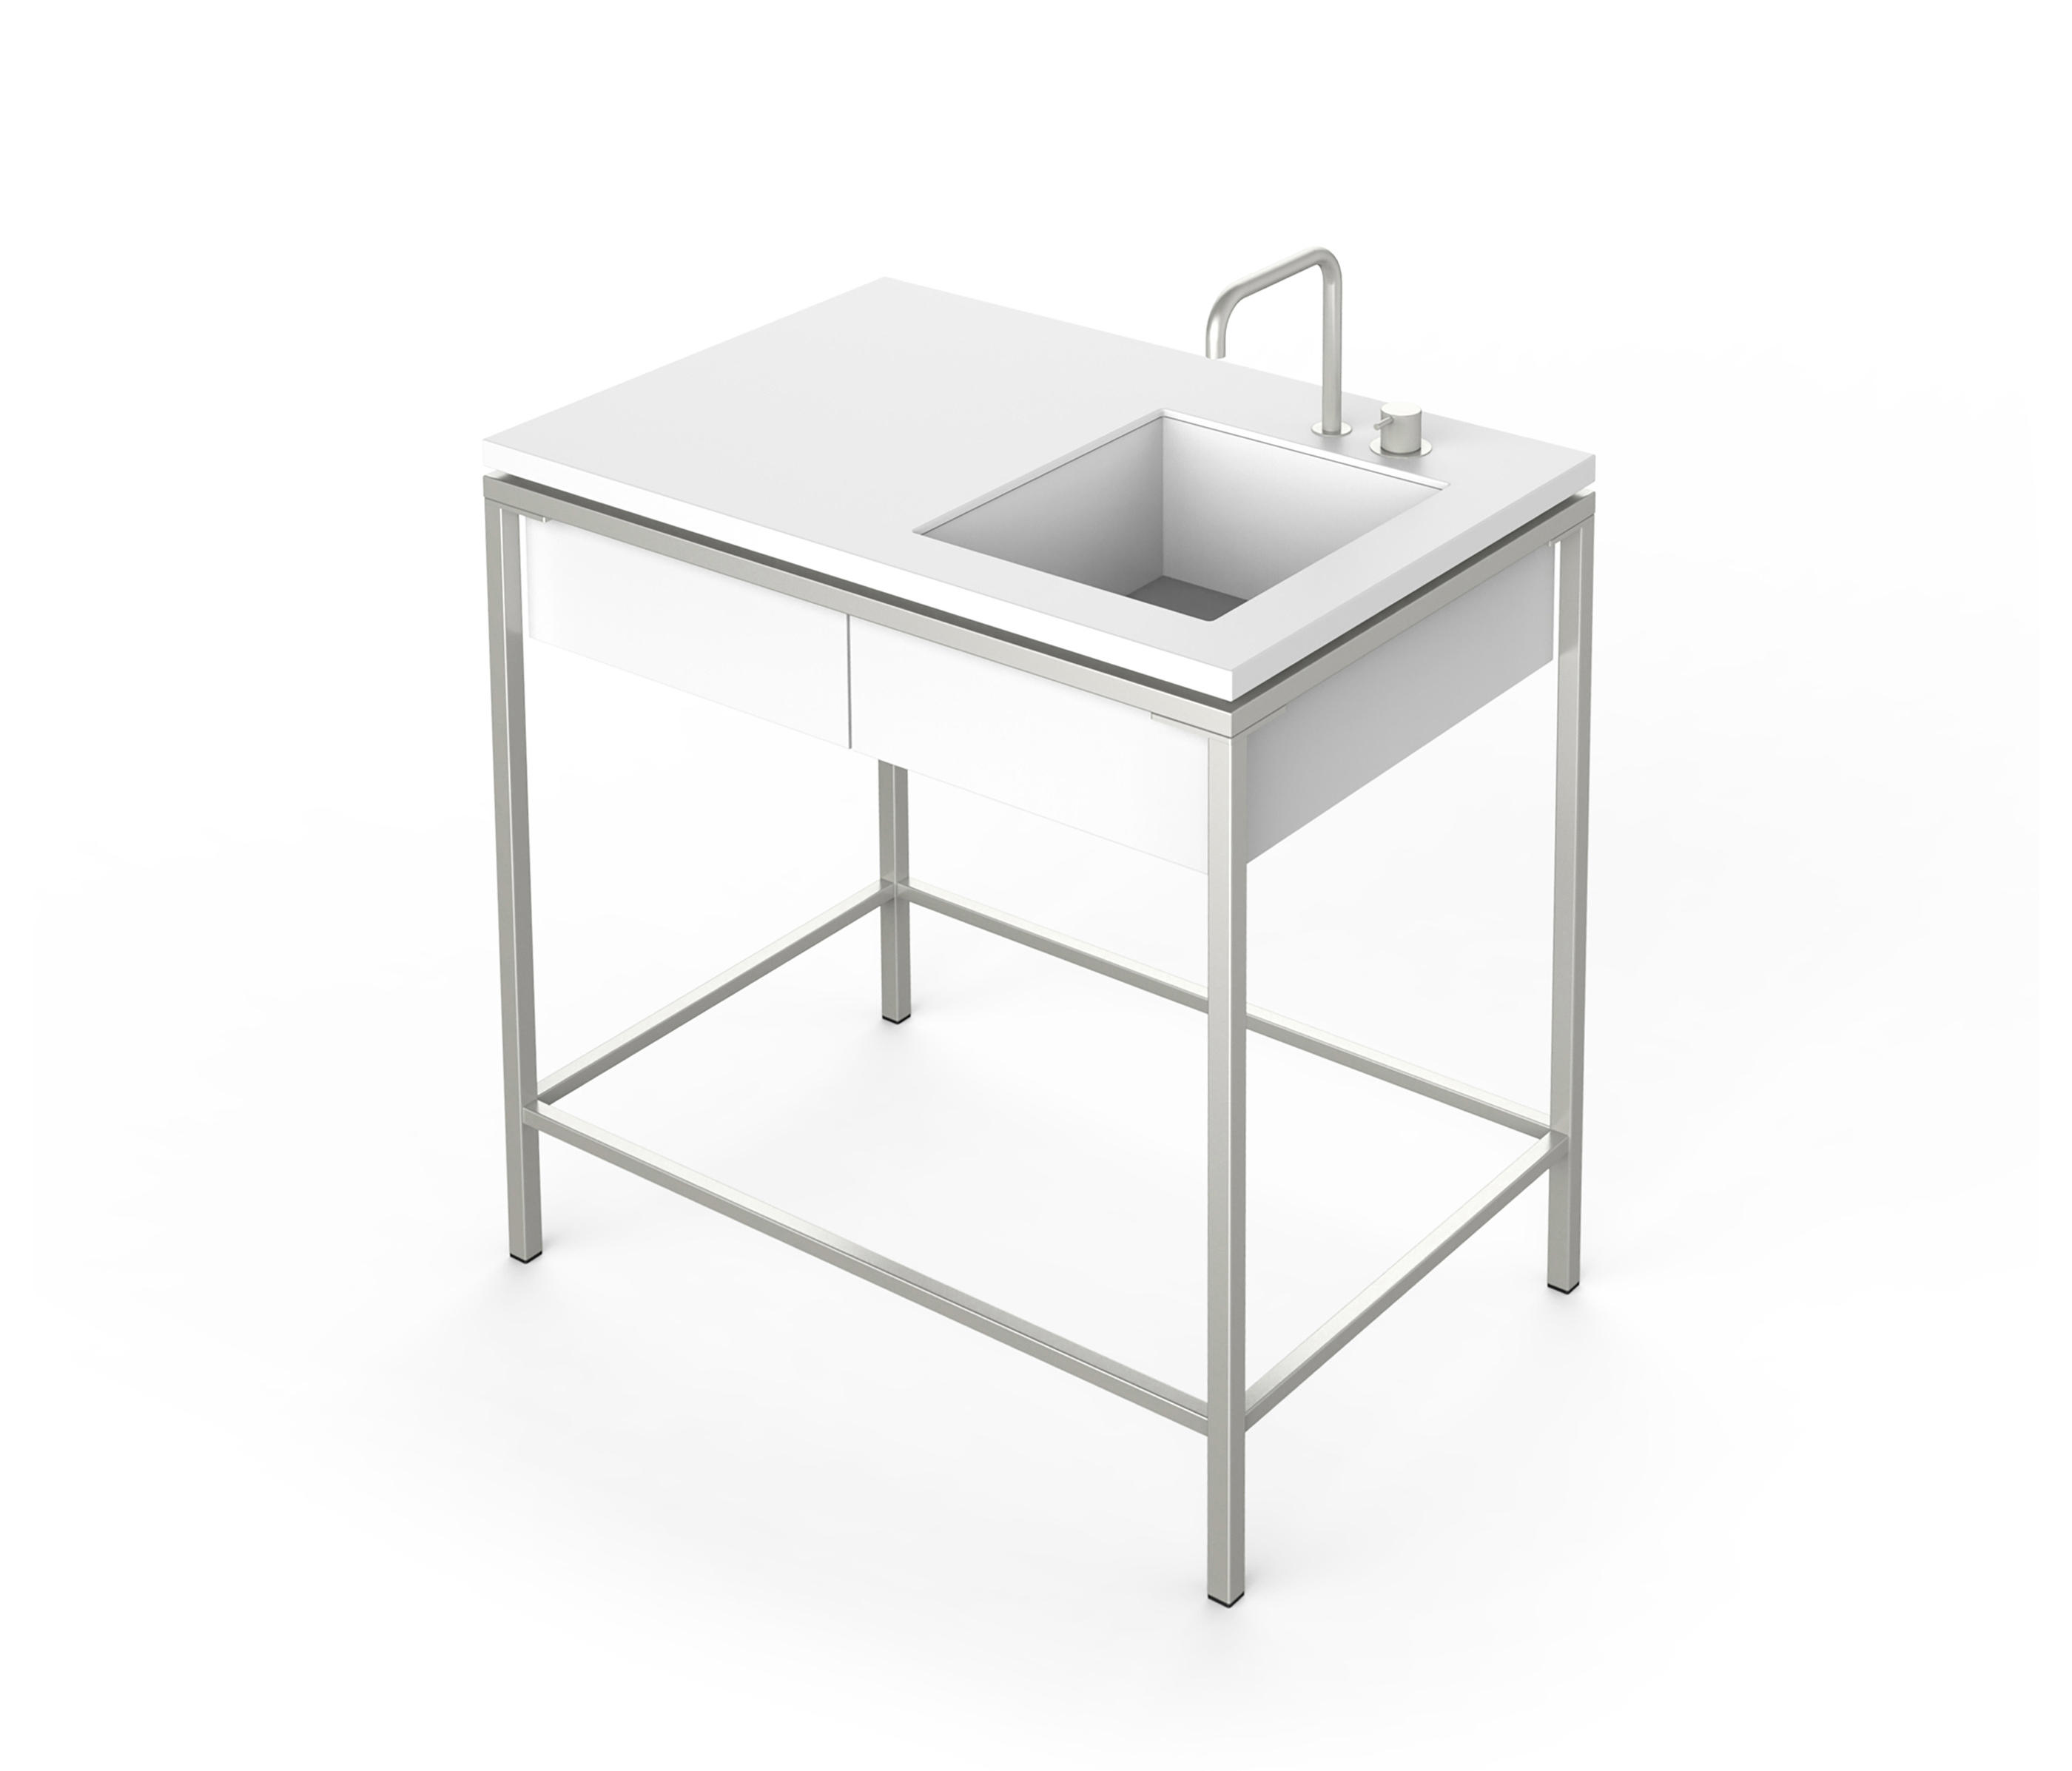 Outdoor kitchen sink outdoor kitchens by viteo architonic for Outdoor kitchen sink